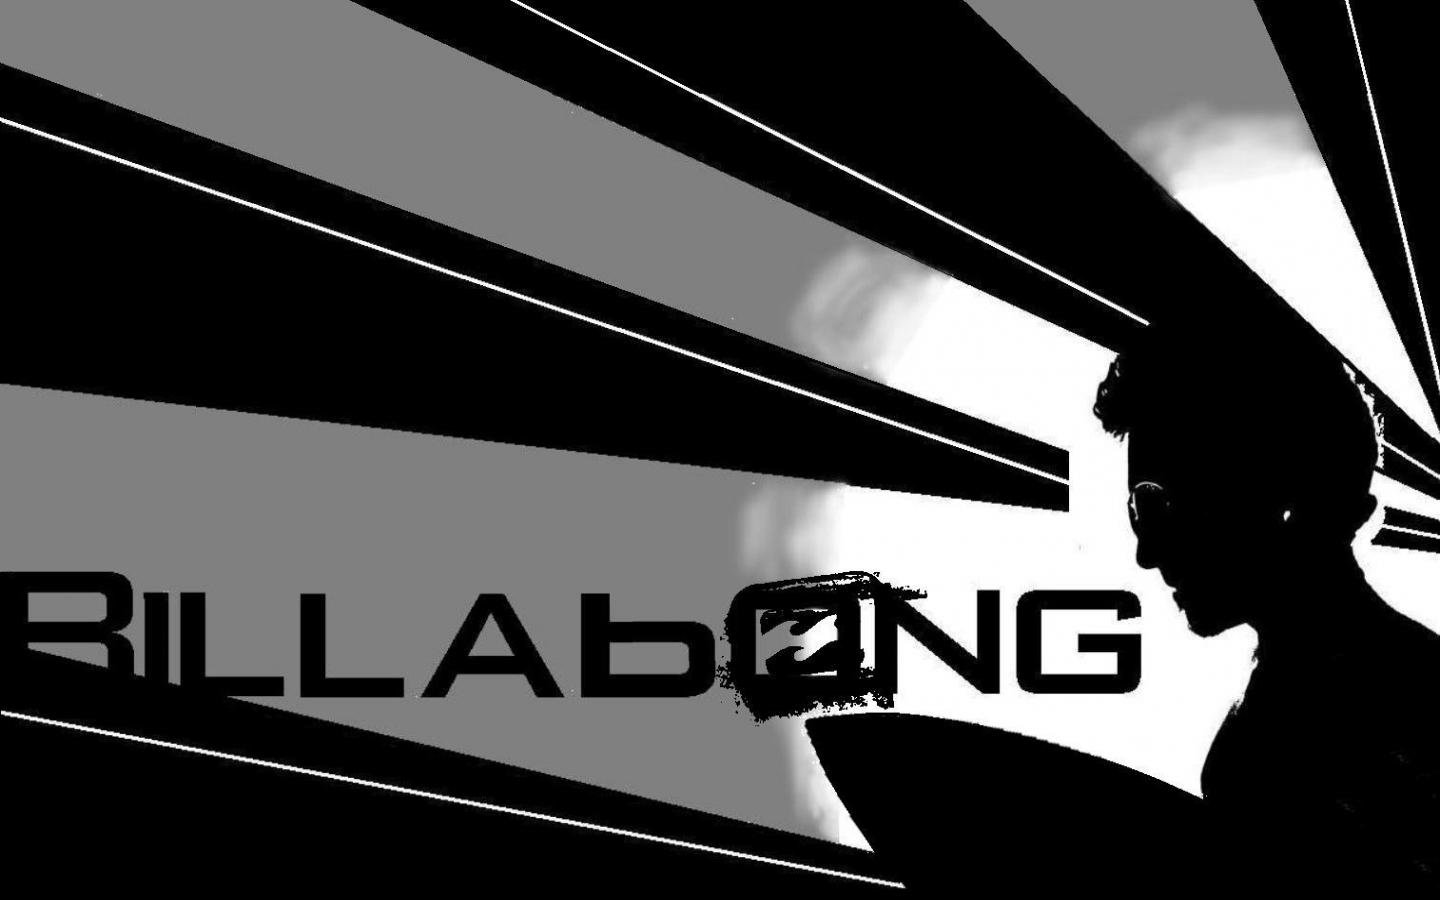 Best Billabong wallpaper ID:326574 for High Resolution hd 1440x900 PC